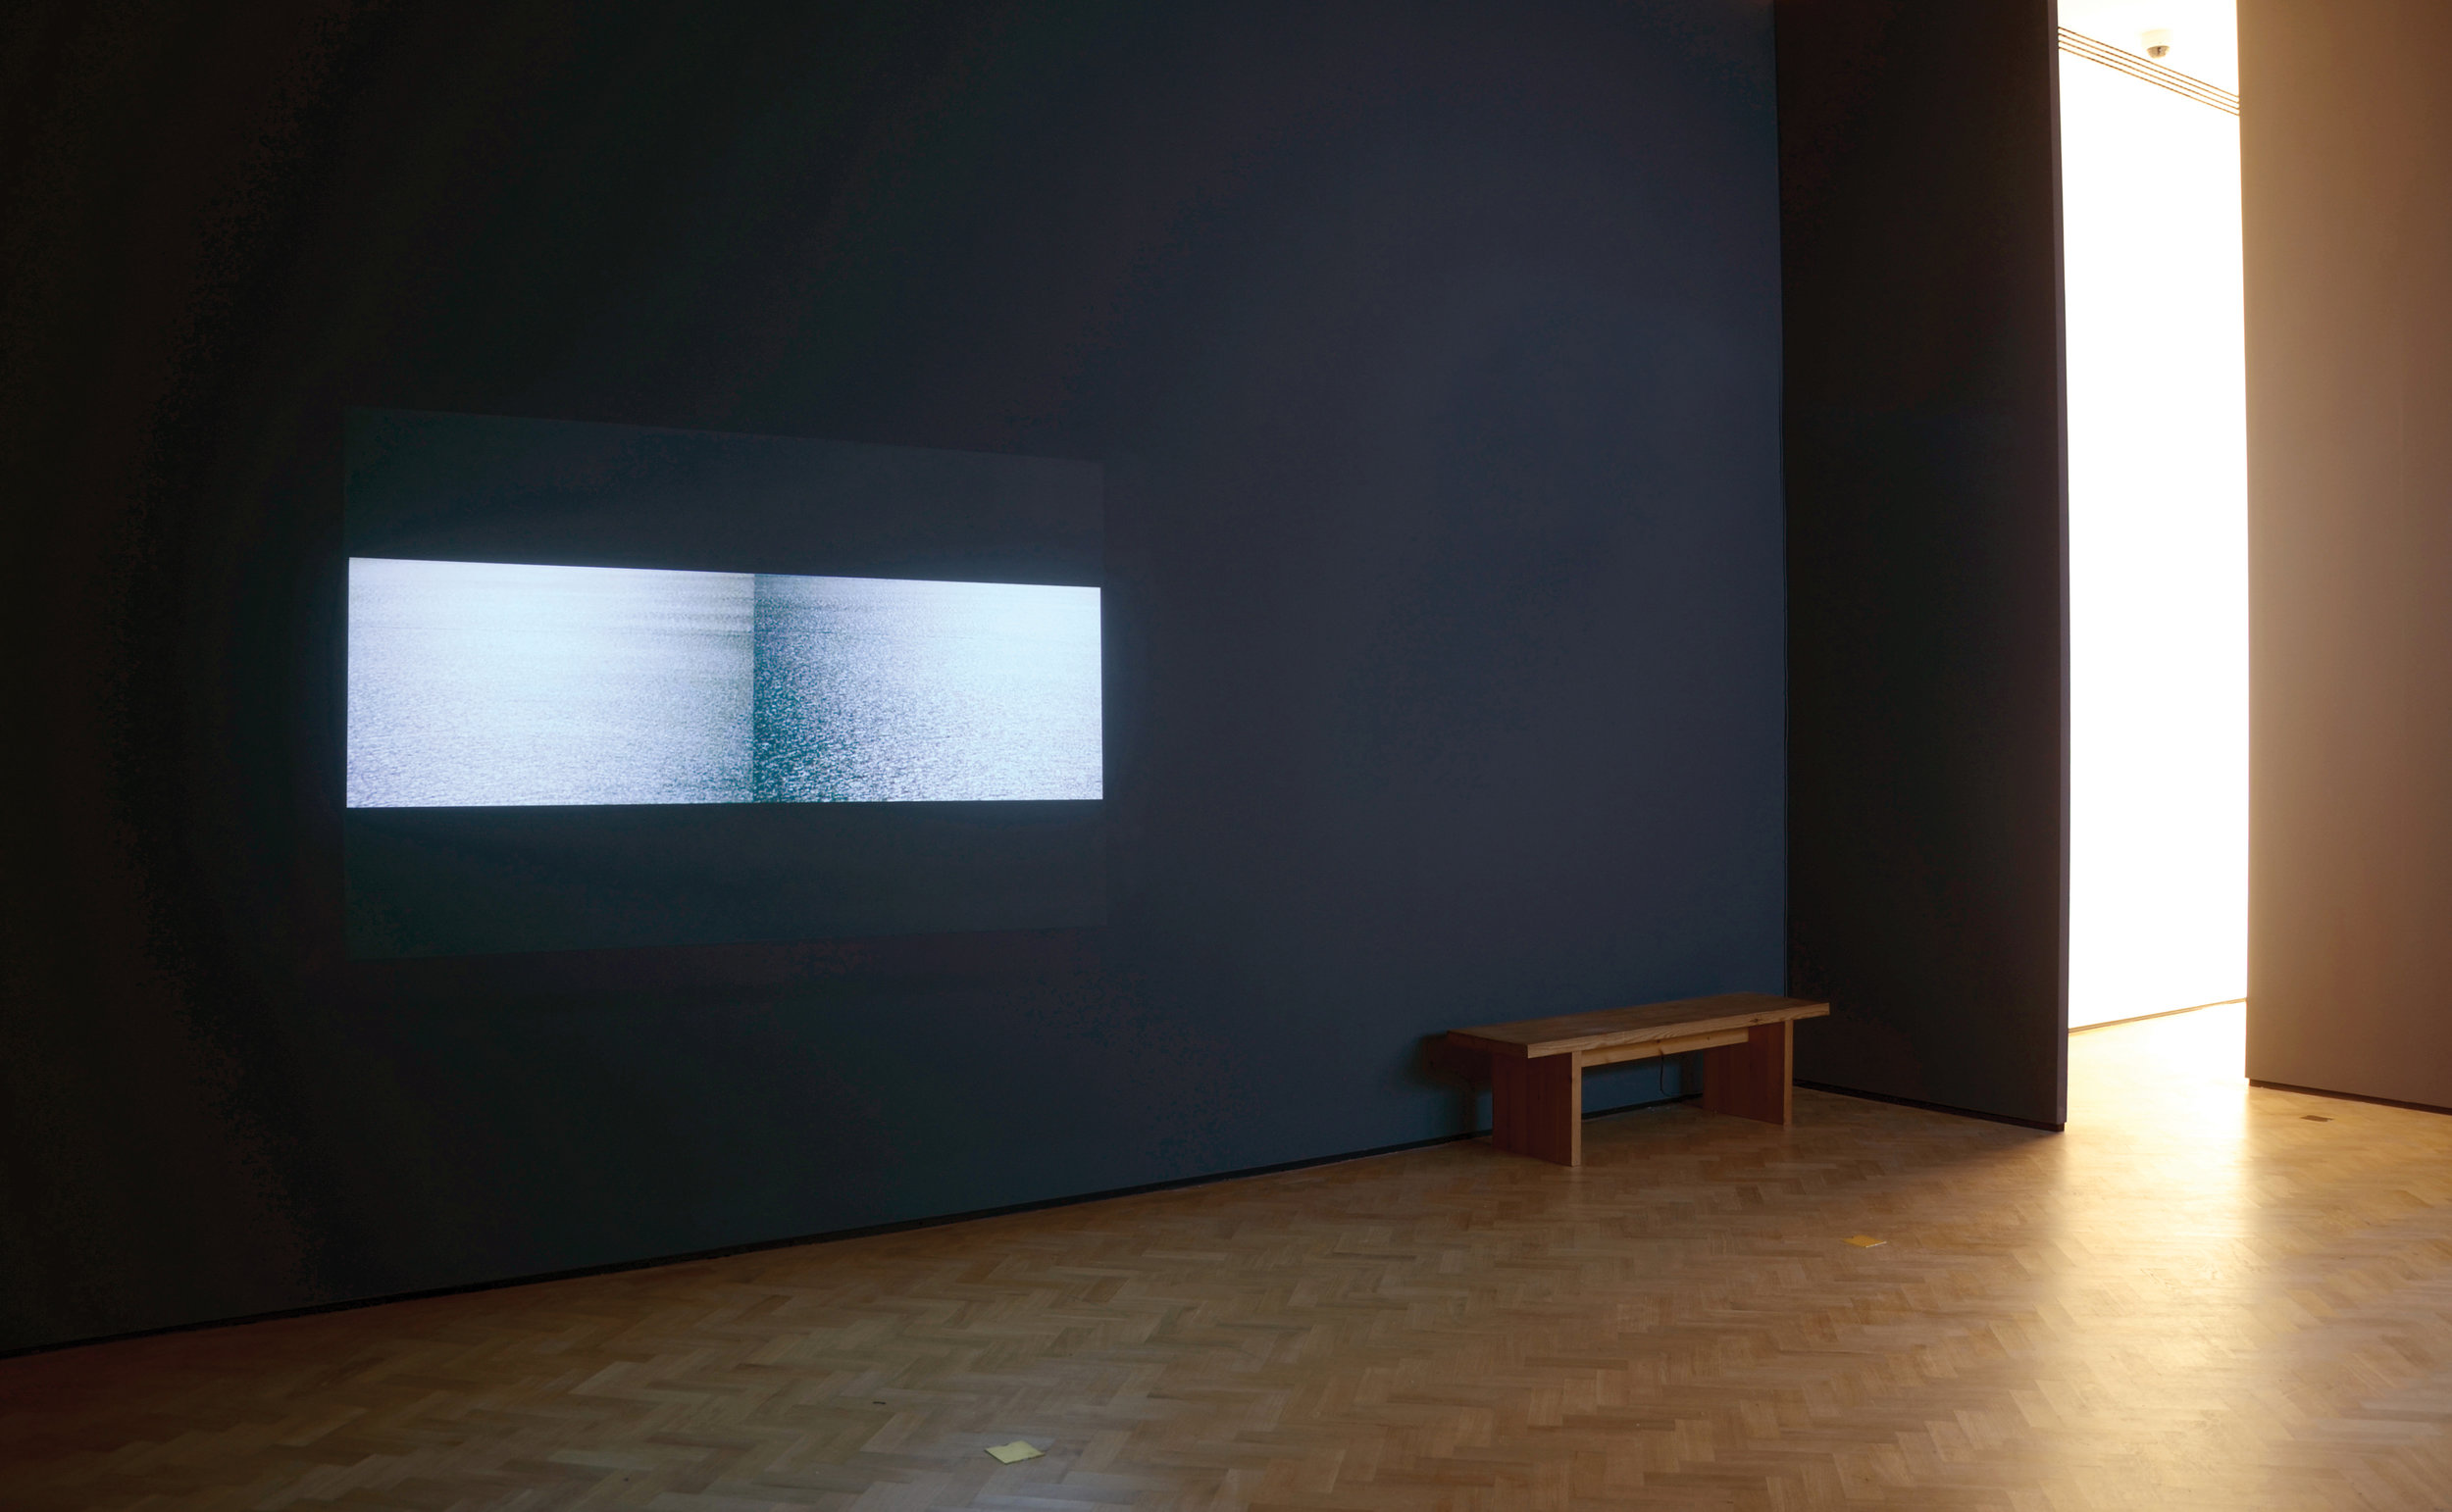 Sylvia Safdie   Larnaca No. 3, 2017   Total running time:11:44 minutes / HD / colour  Camera: Sylvia Safdie  Editing: Patrick Andrew Boivin, Sylvia Safdie  Audio: Silent  Installation view,  These Waters